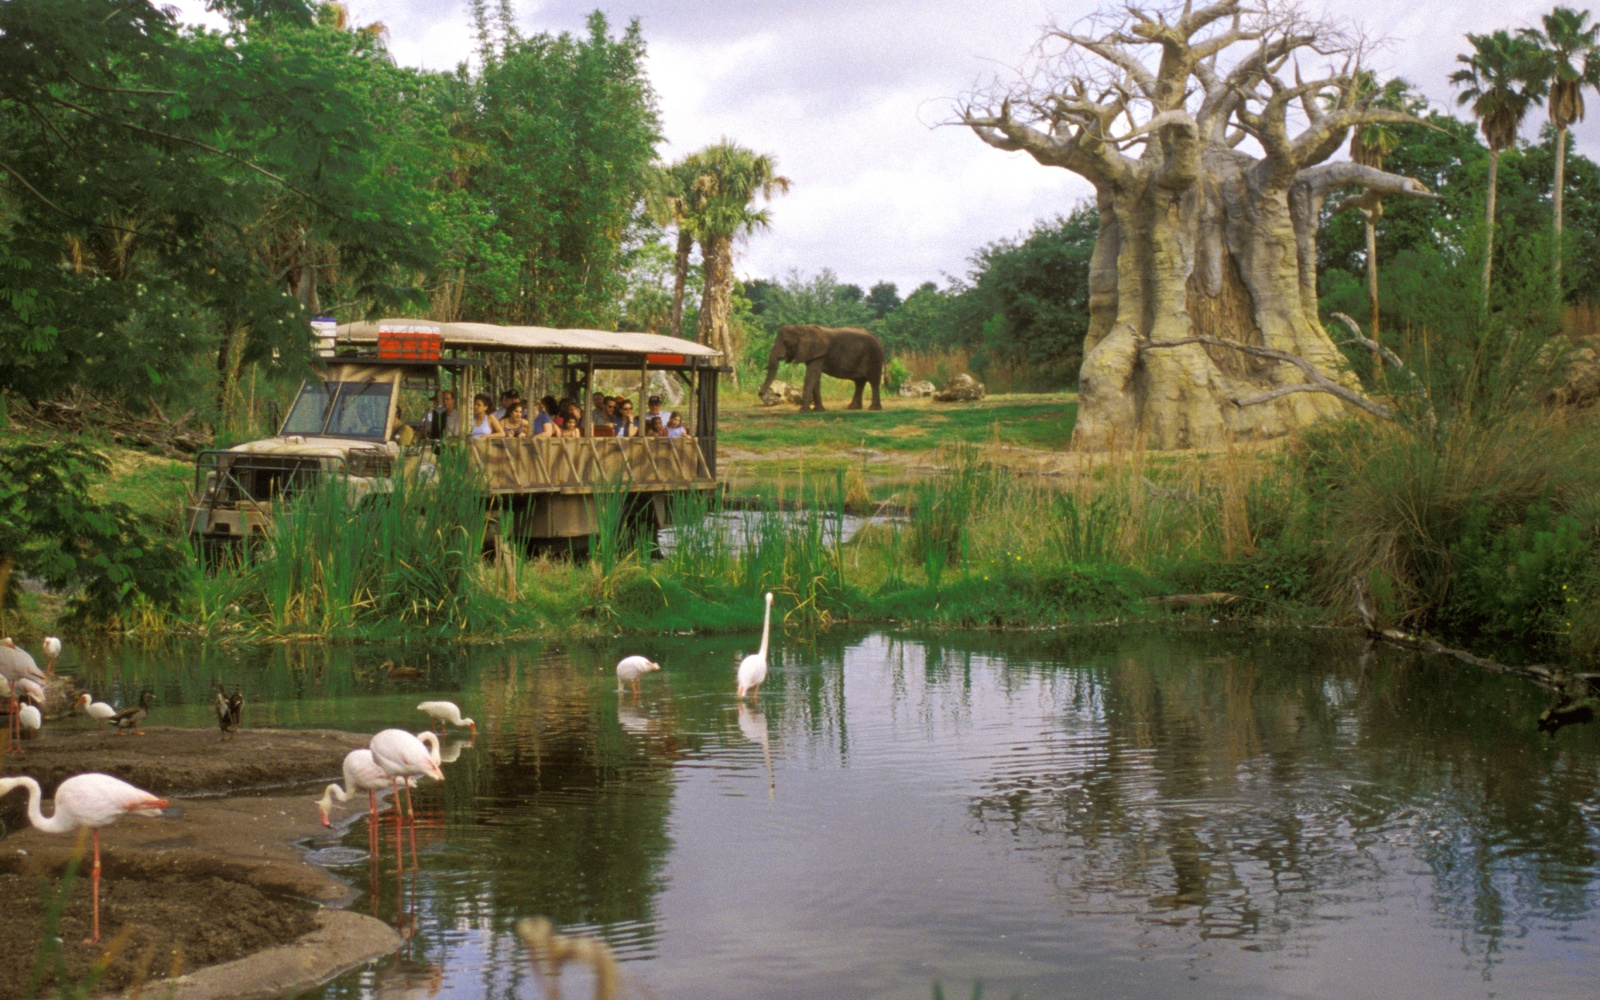 Disney's Animal Kingdom, Walt Disney World Resort, Lake Buena Vista, Florida